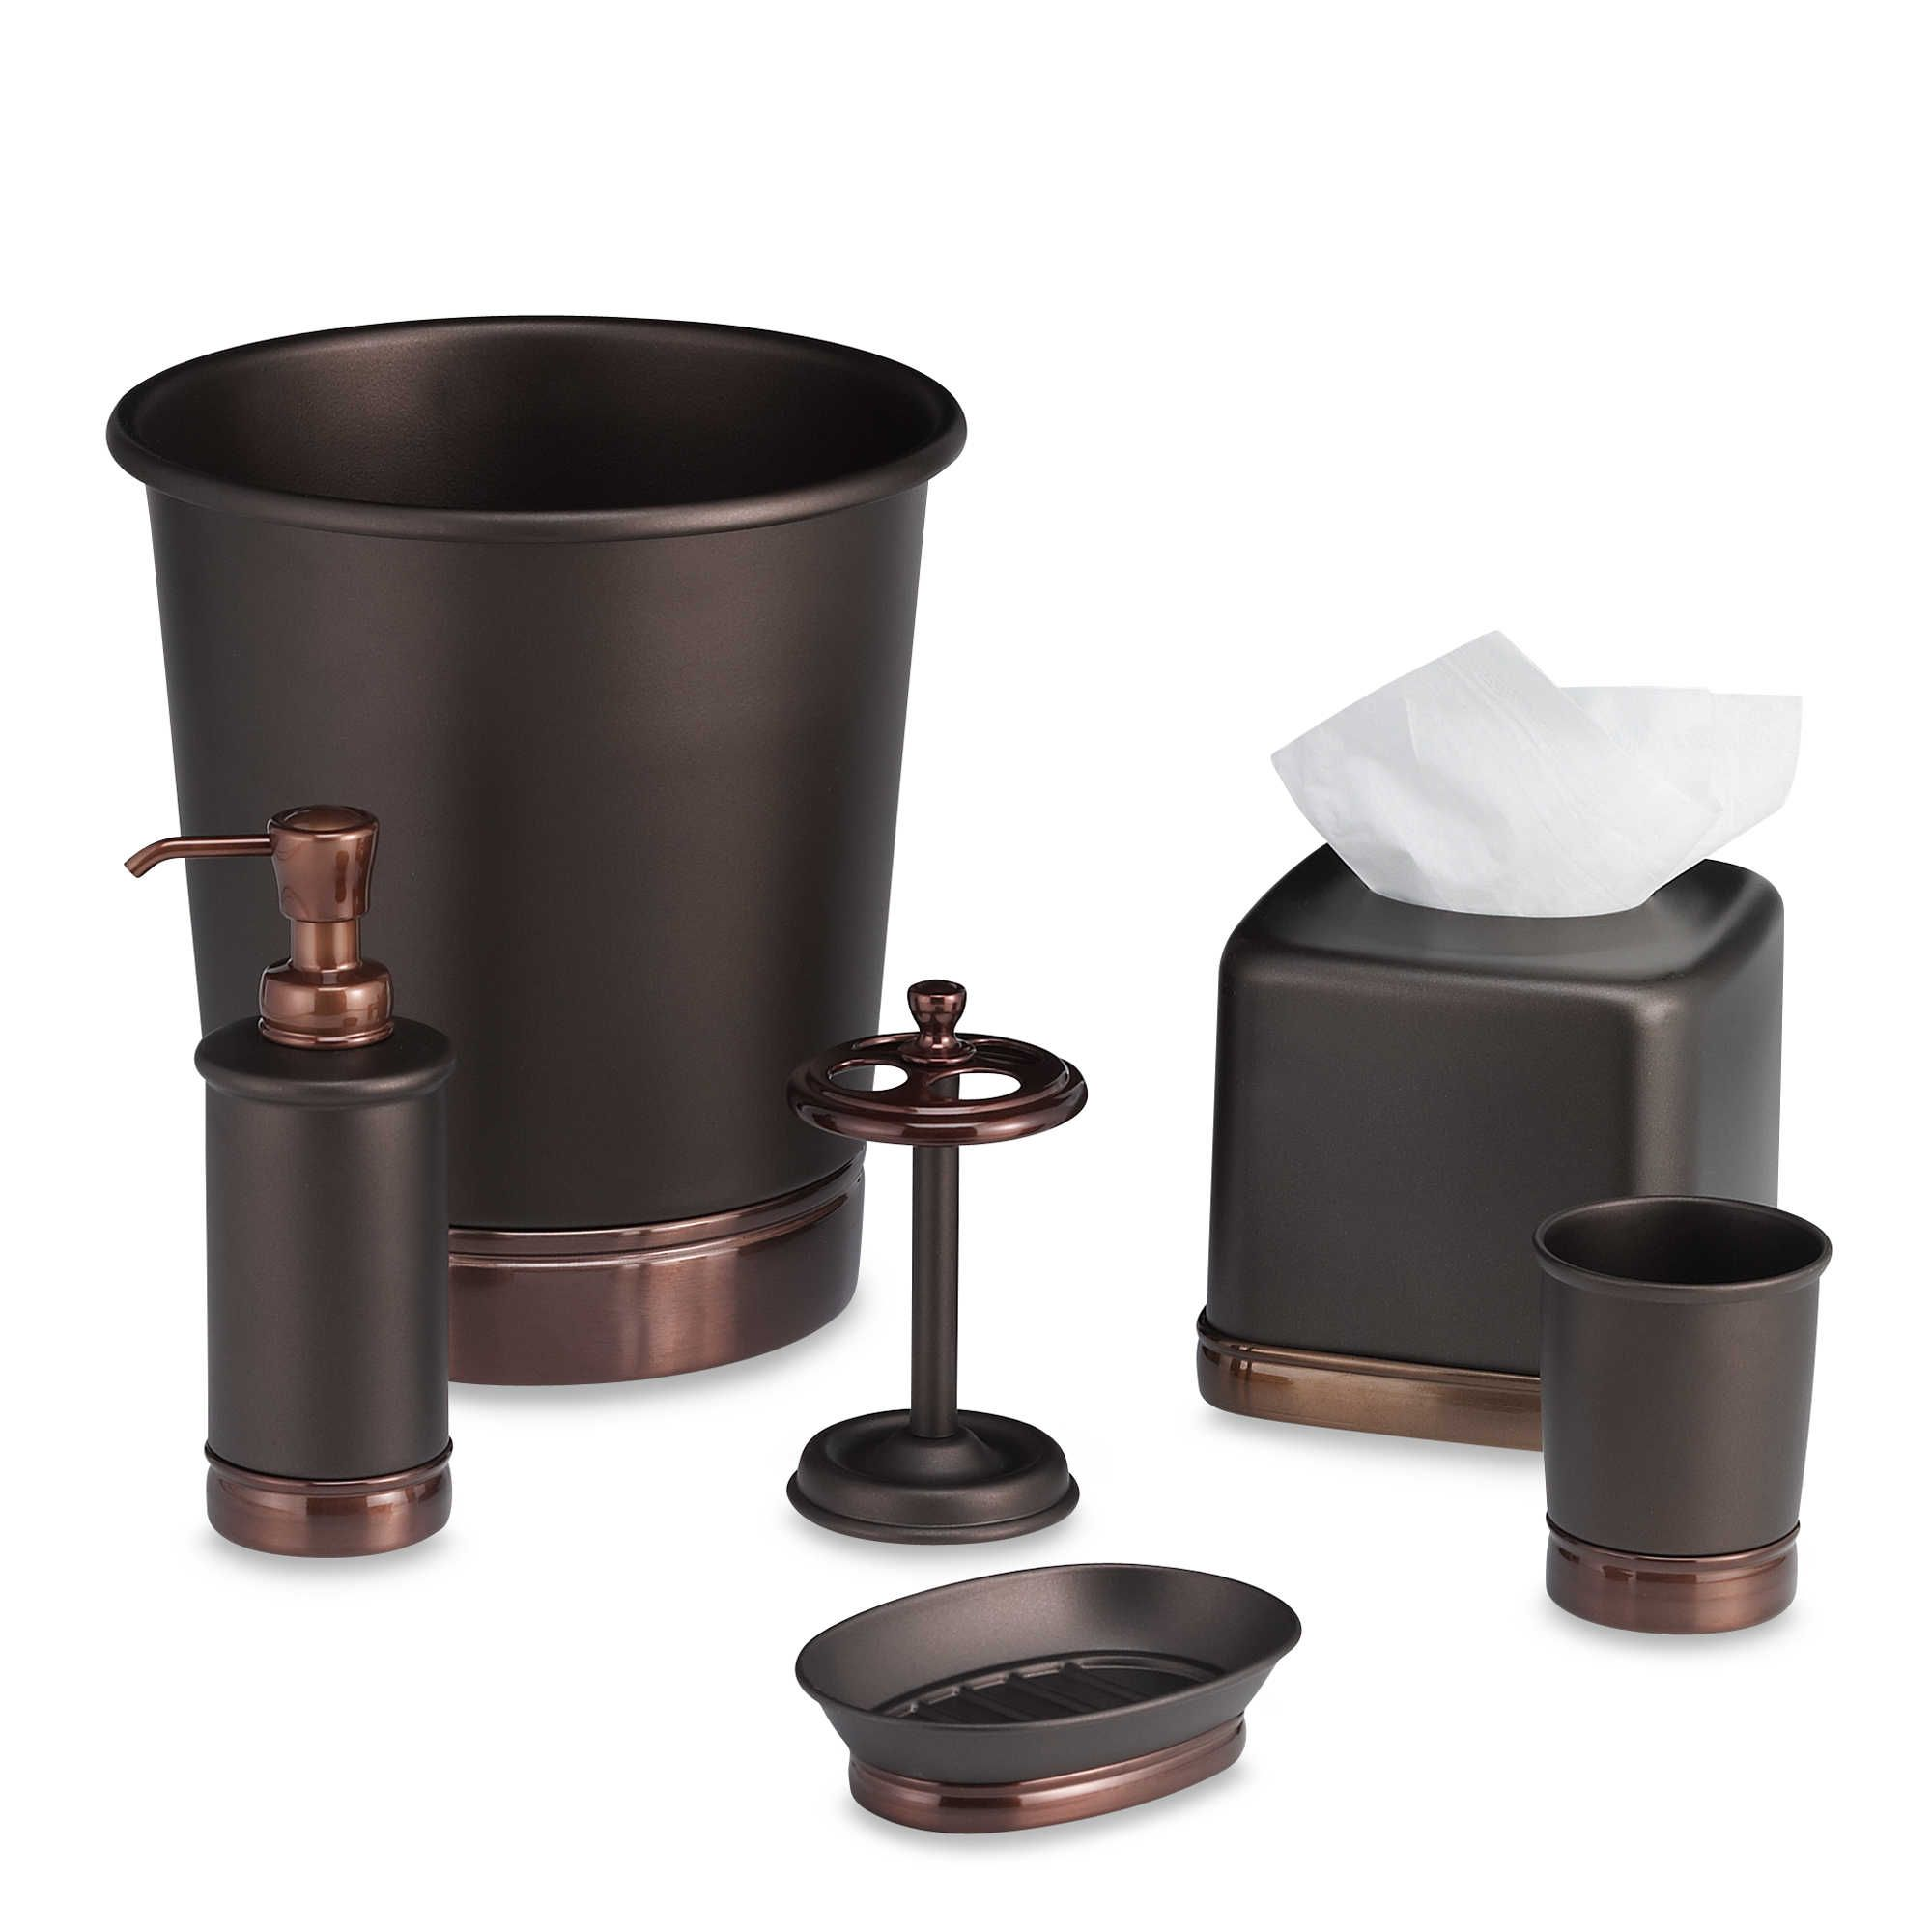 Idesign York Metal Wastebasket In Oil Rubbed Bronze Bronze Bathroom Decor Bronze Bathroom Accessories Oil Rubbed Bronze